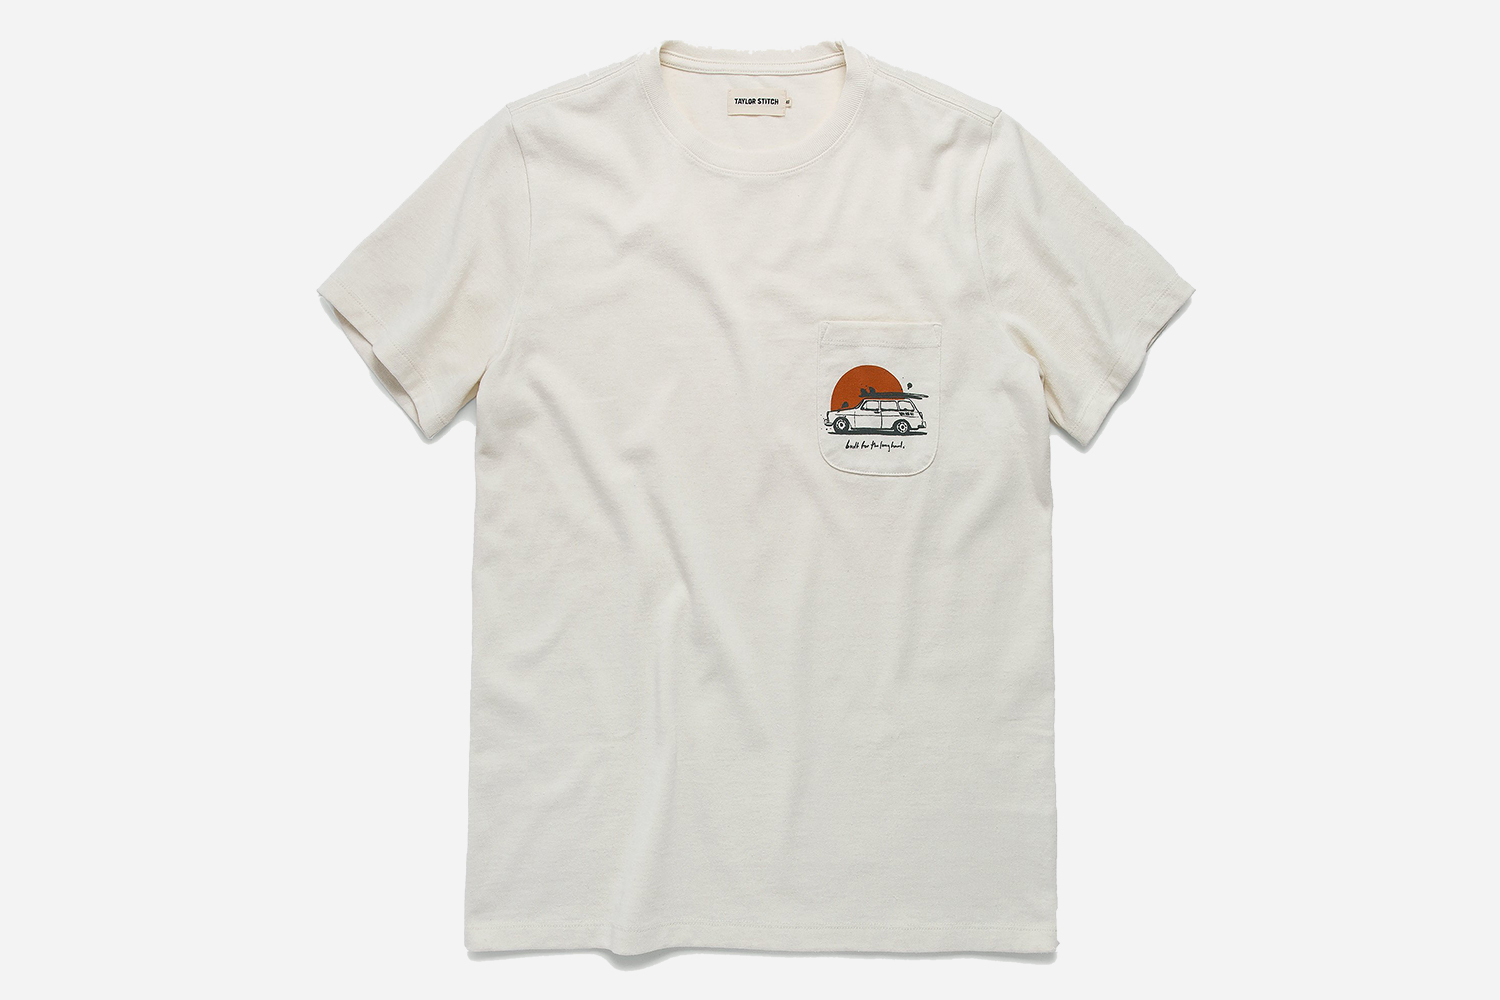 In Praise of the Heavy T-Shirt (And Where to Grab One for $29)